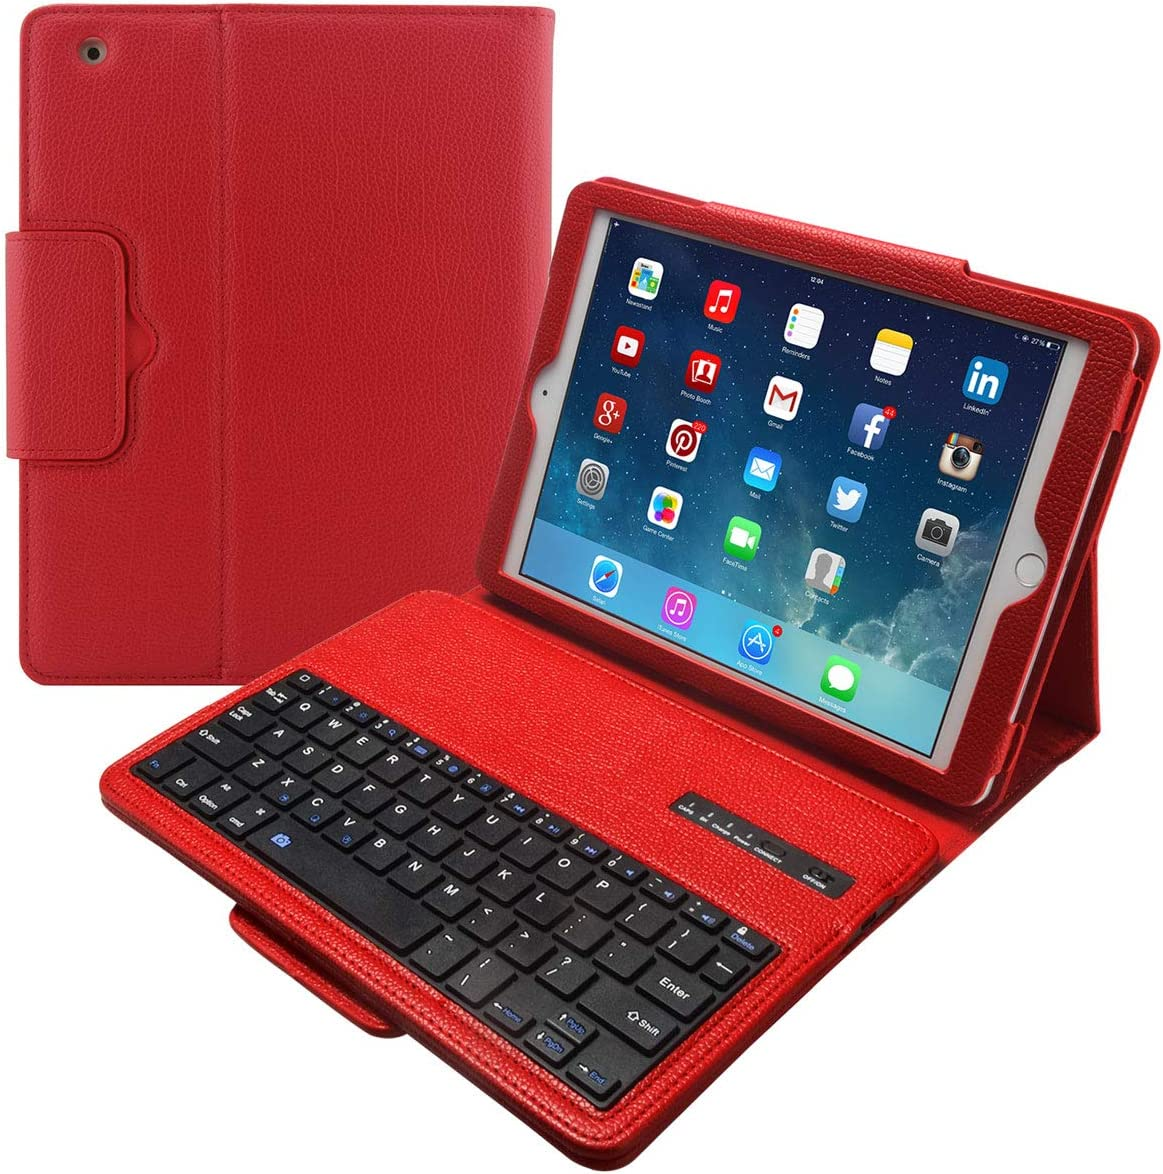 Eoso Keyboard Case for Apple iPad 2/3/4 Folding Leather Folio Cover with Removable Bluetooth Keyboard for iPad 2/3/4 Tablet (Red)